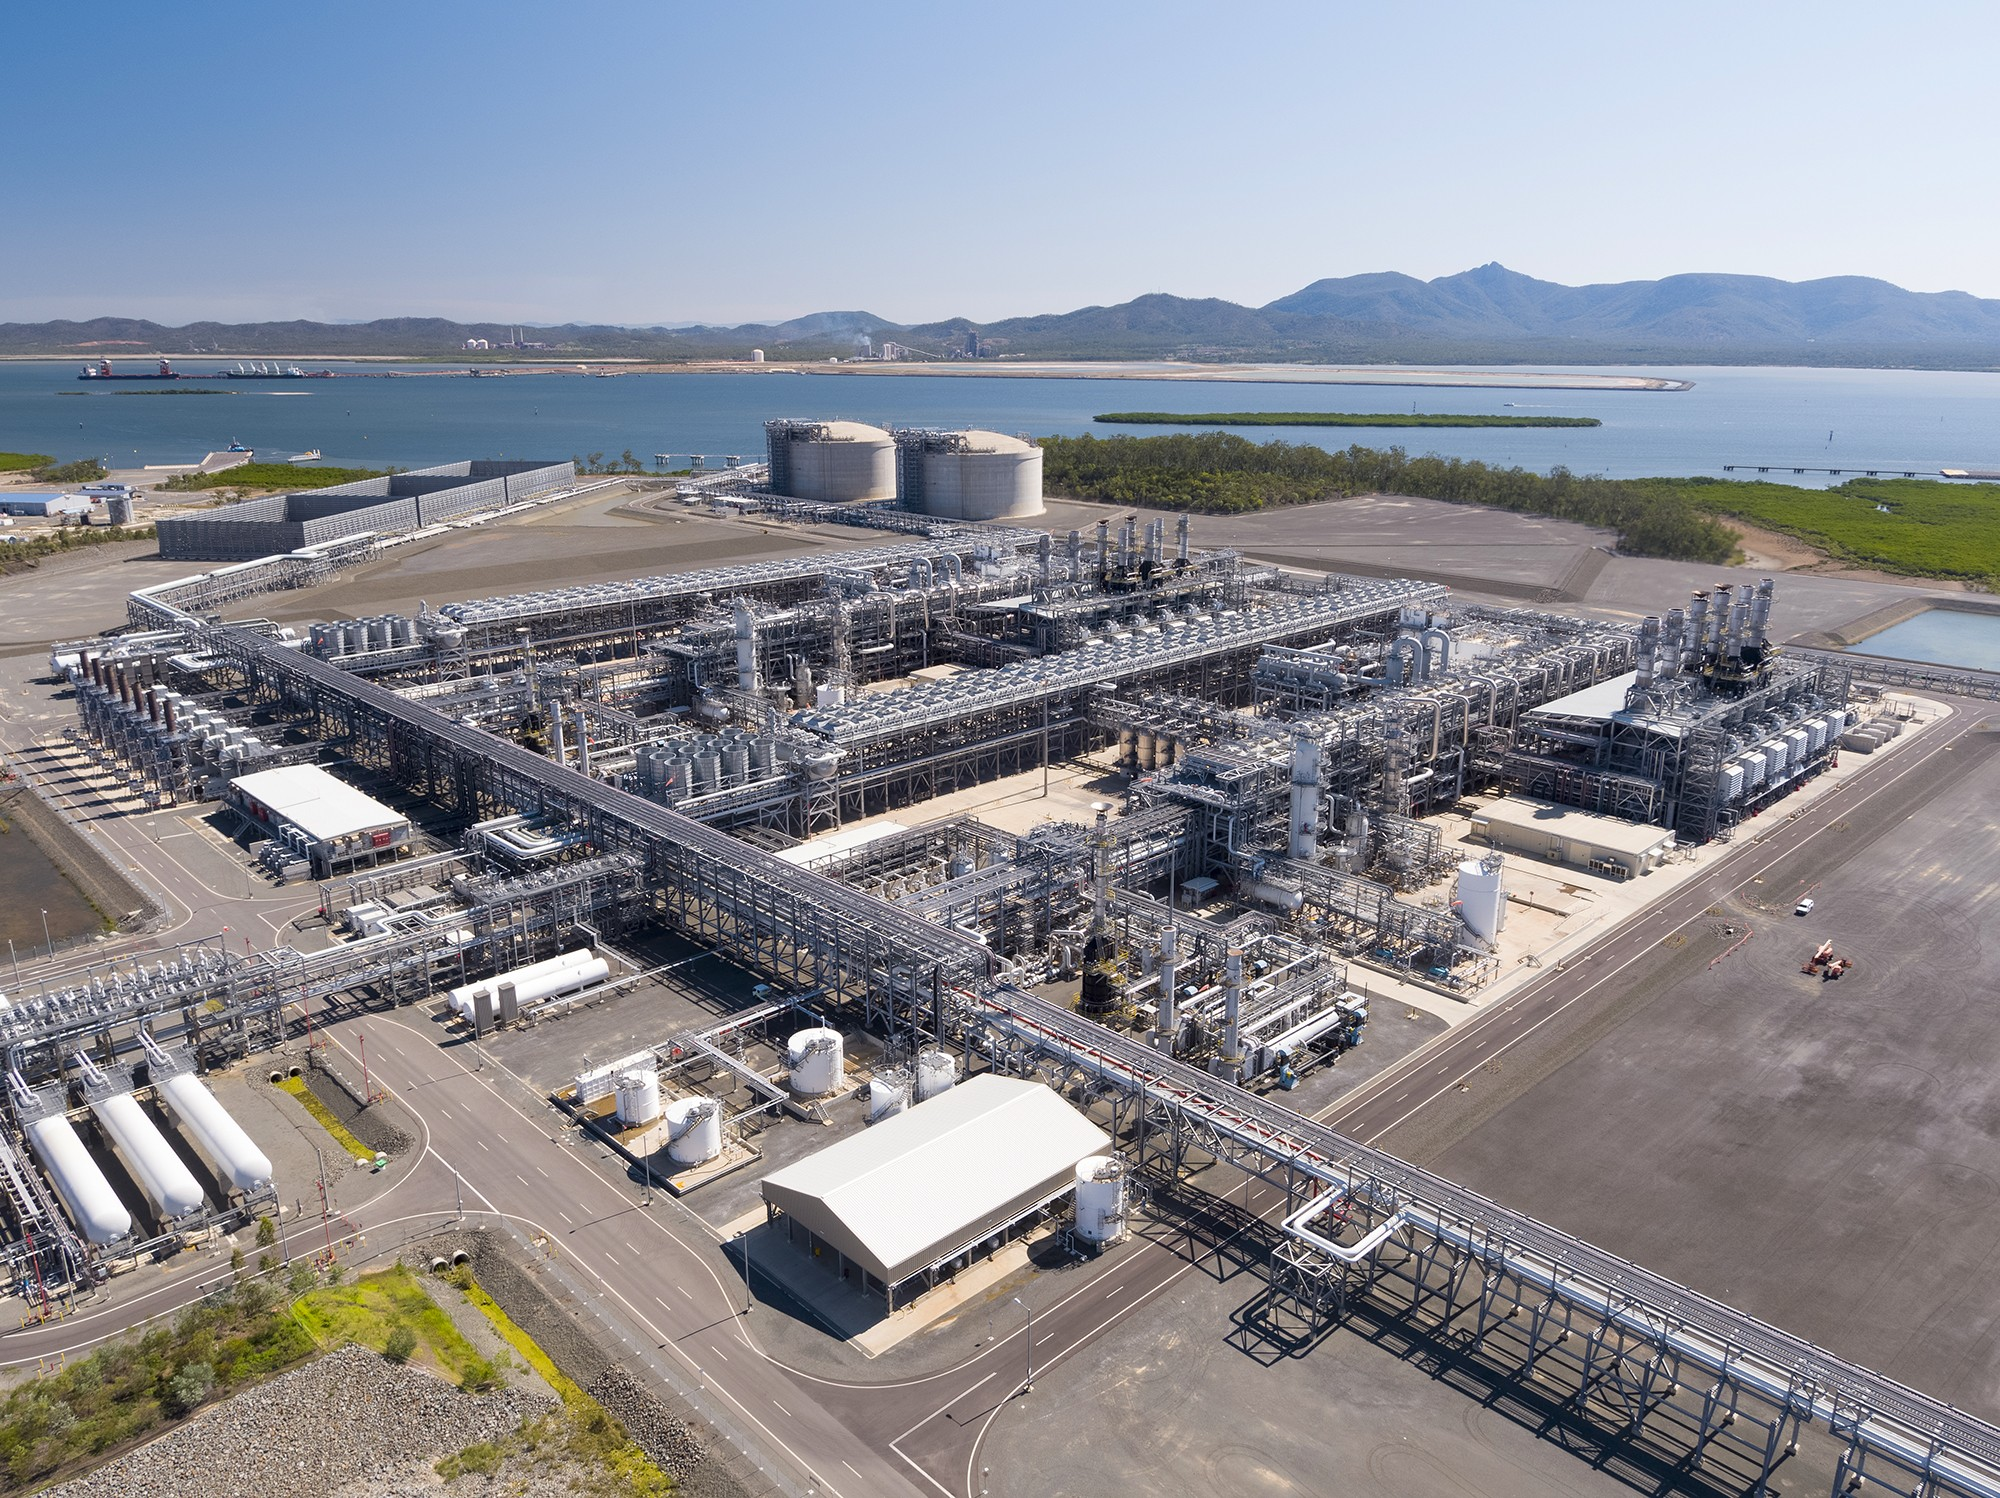 Aerial view of APLNG plant in Australia